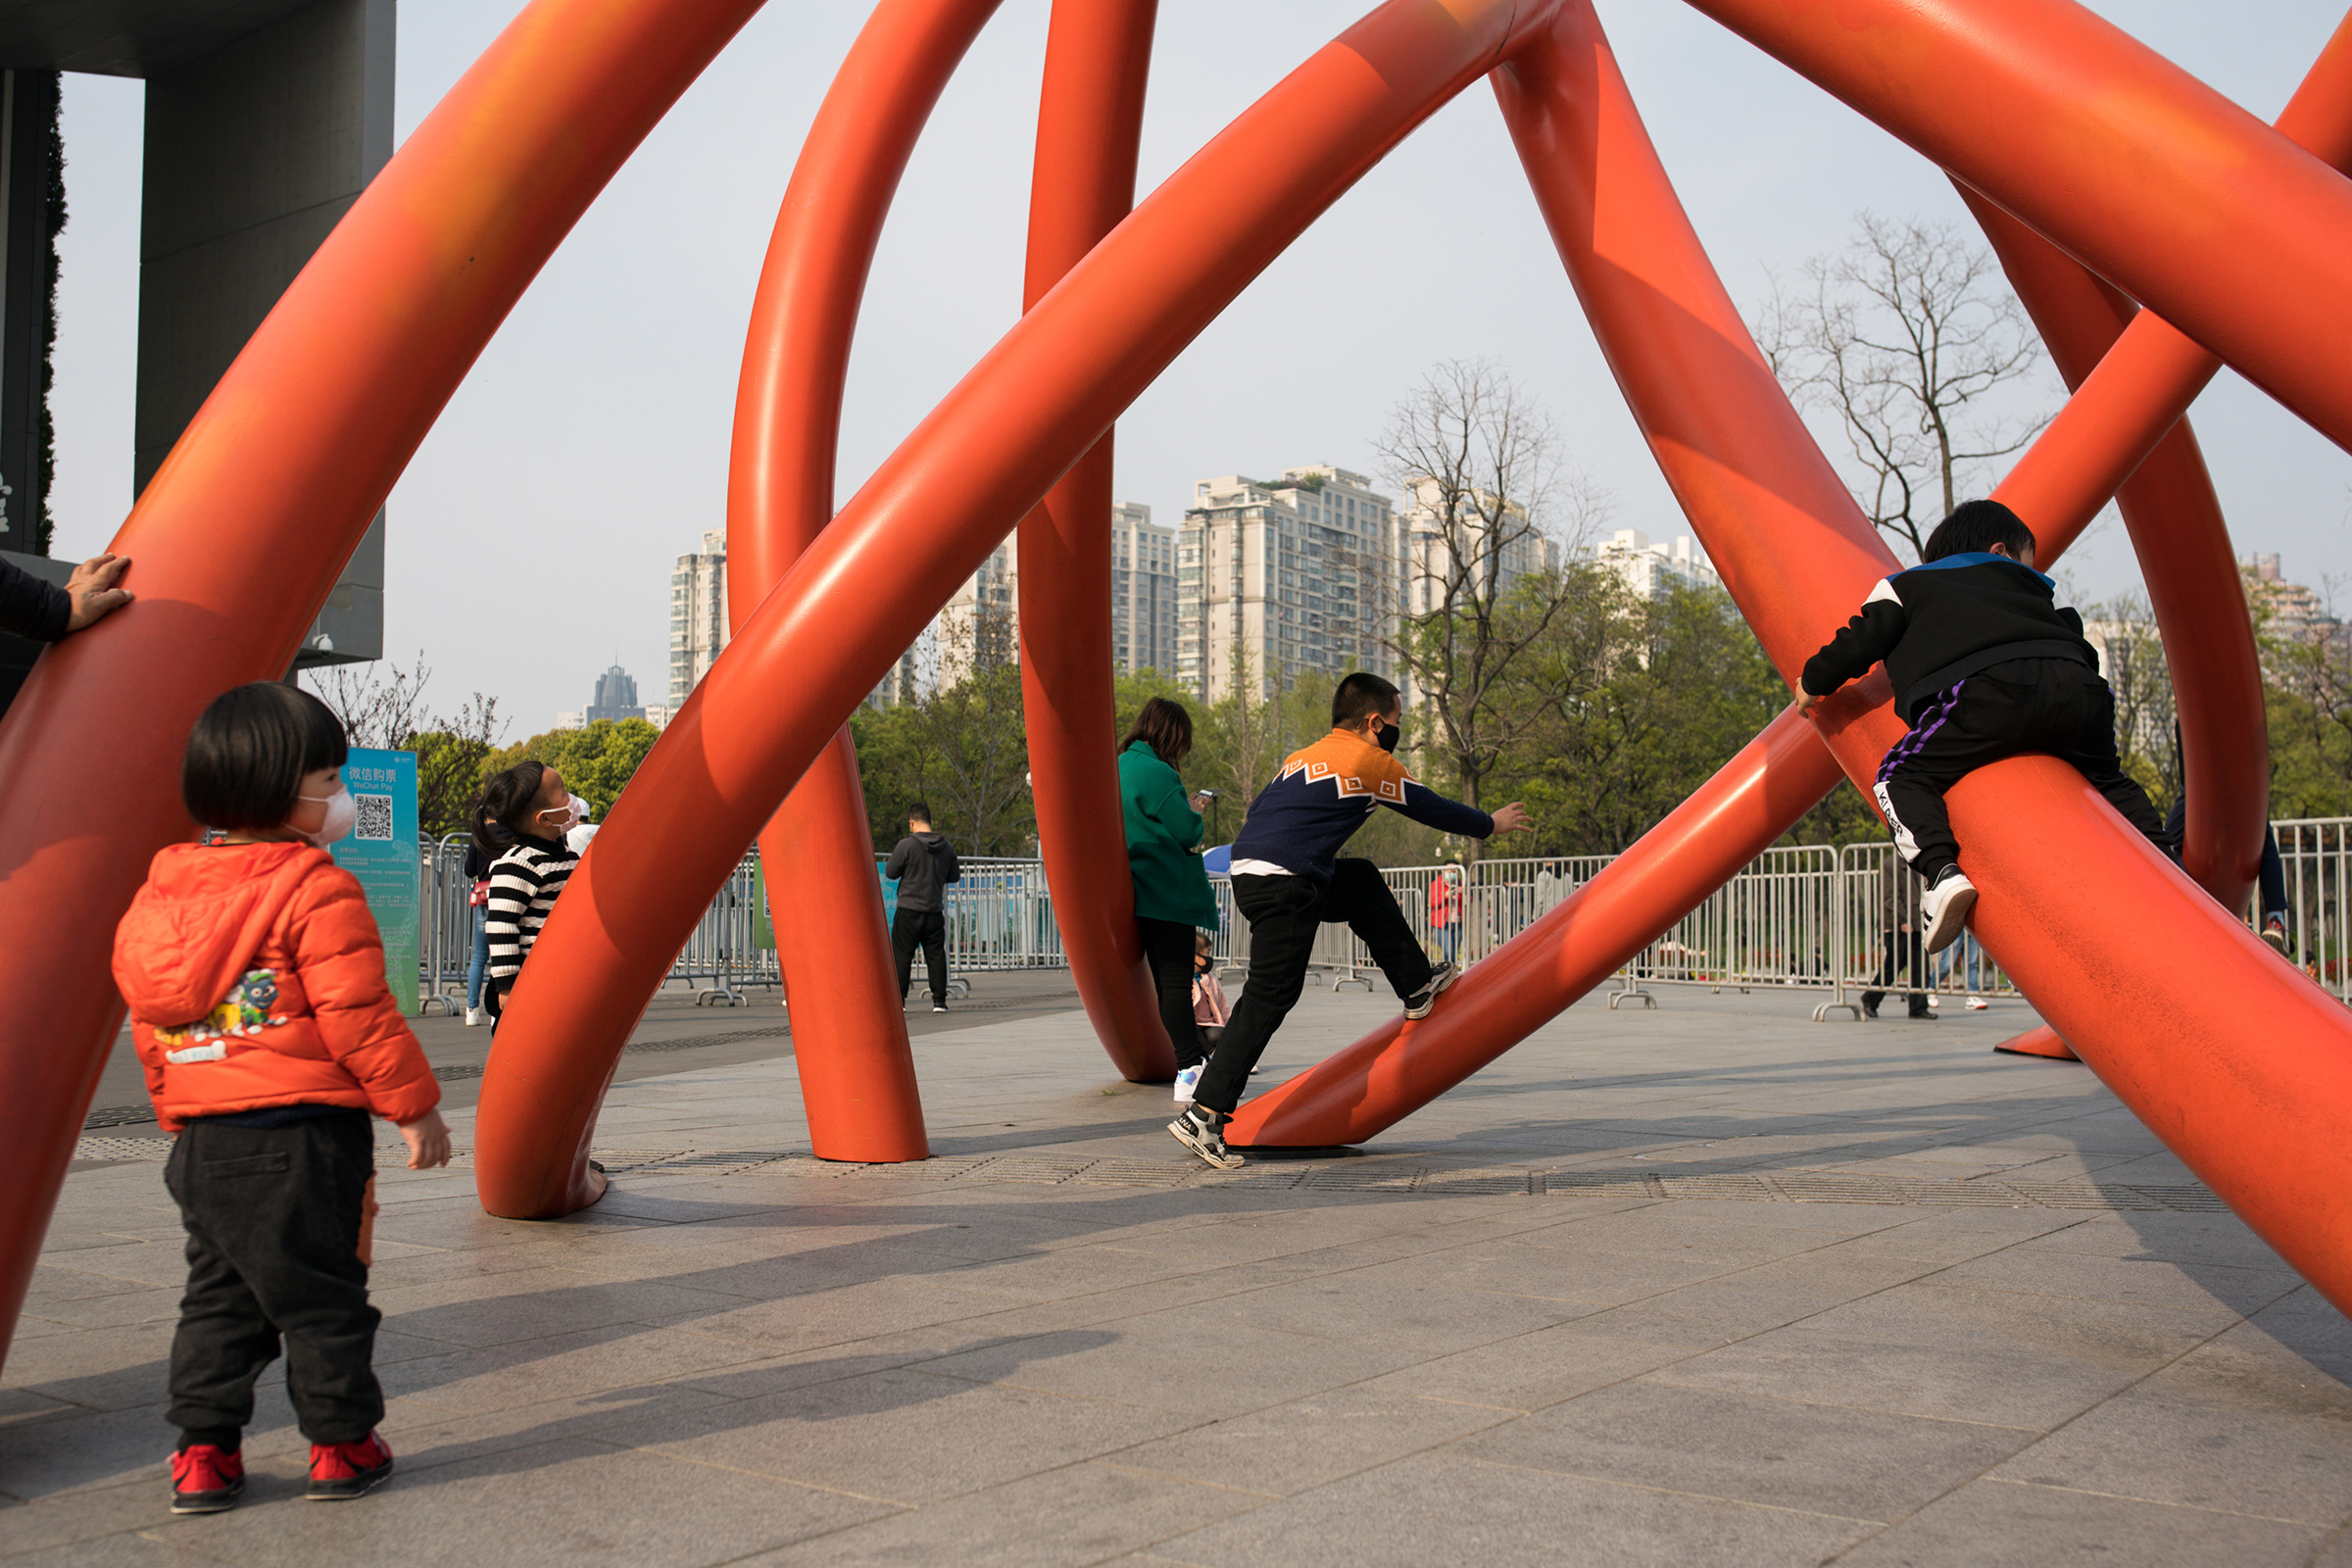 Children wear protective masks while playing under a sculpture in a city park on April 01, in Shanghai, China